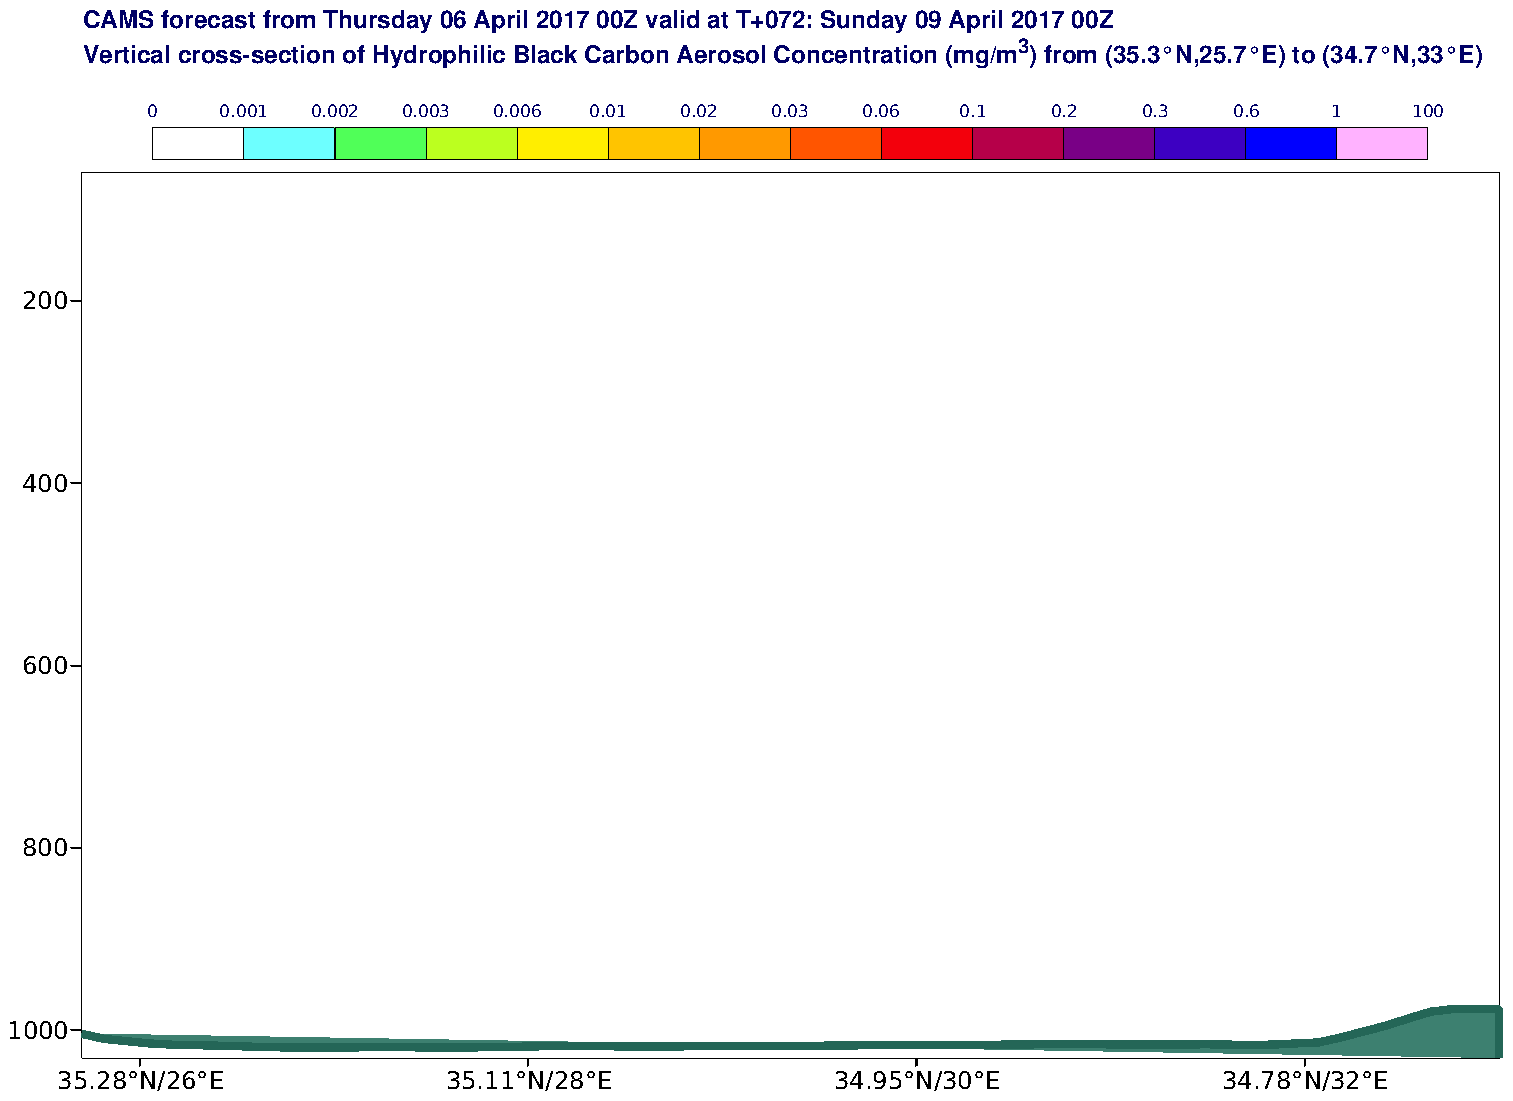 Vertical cross-section of Hydrophilic Black Carbon Aerosol Concentration (mg/m3) valid at T72 - 2017-04-09 00:00